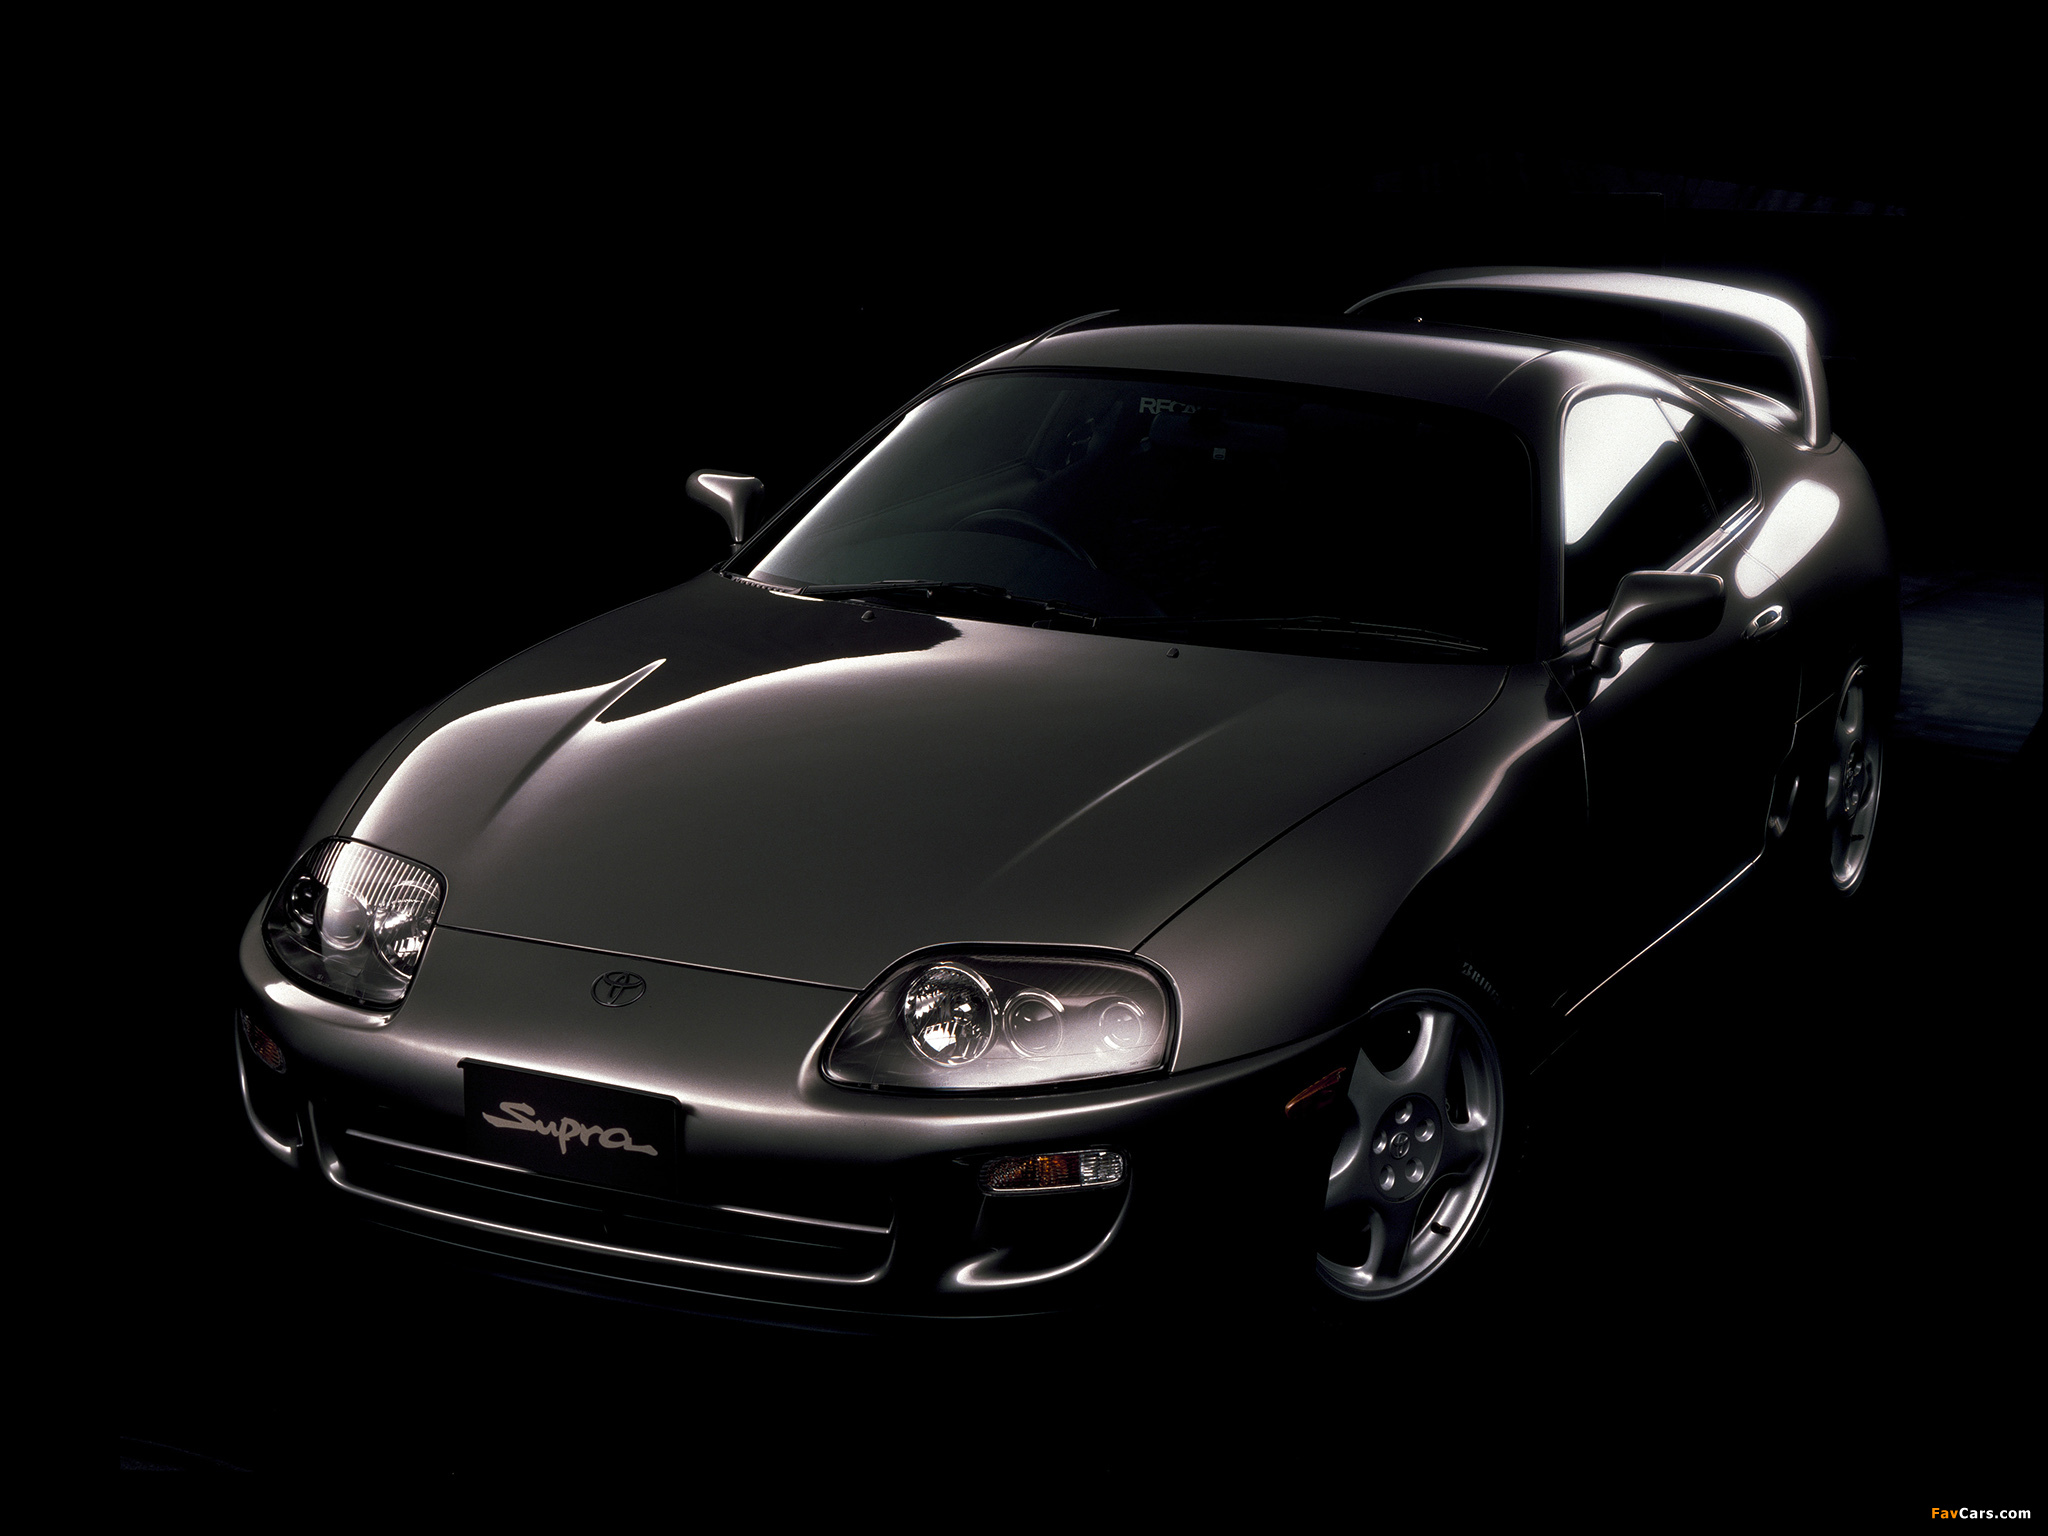 toyota supra rz jza80 1996 2002 wallpapers 2048x1536. Black Bedroom Furniture Sets. Home Design Ideas